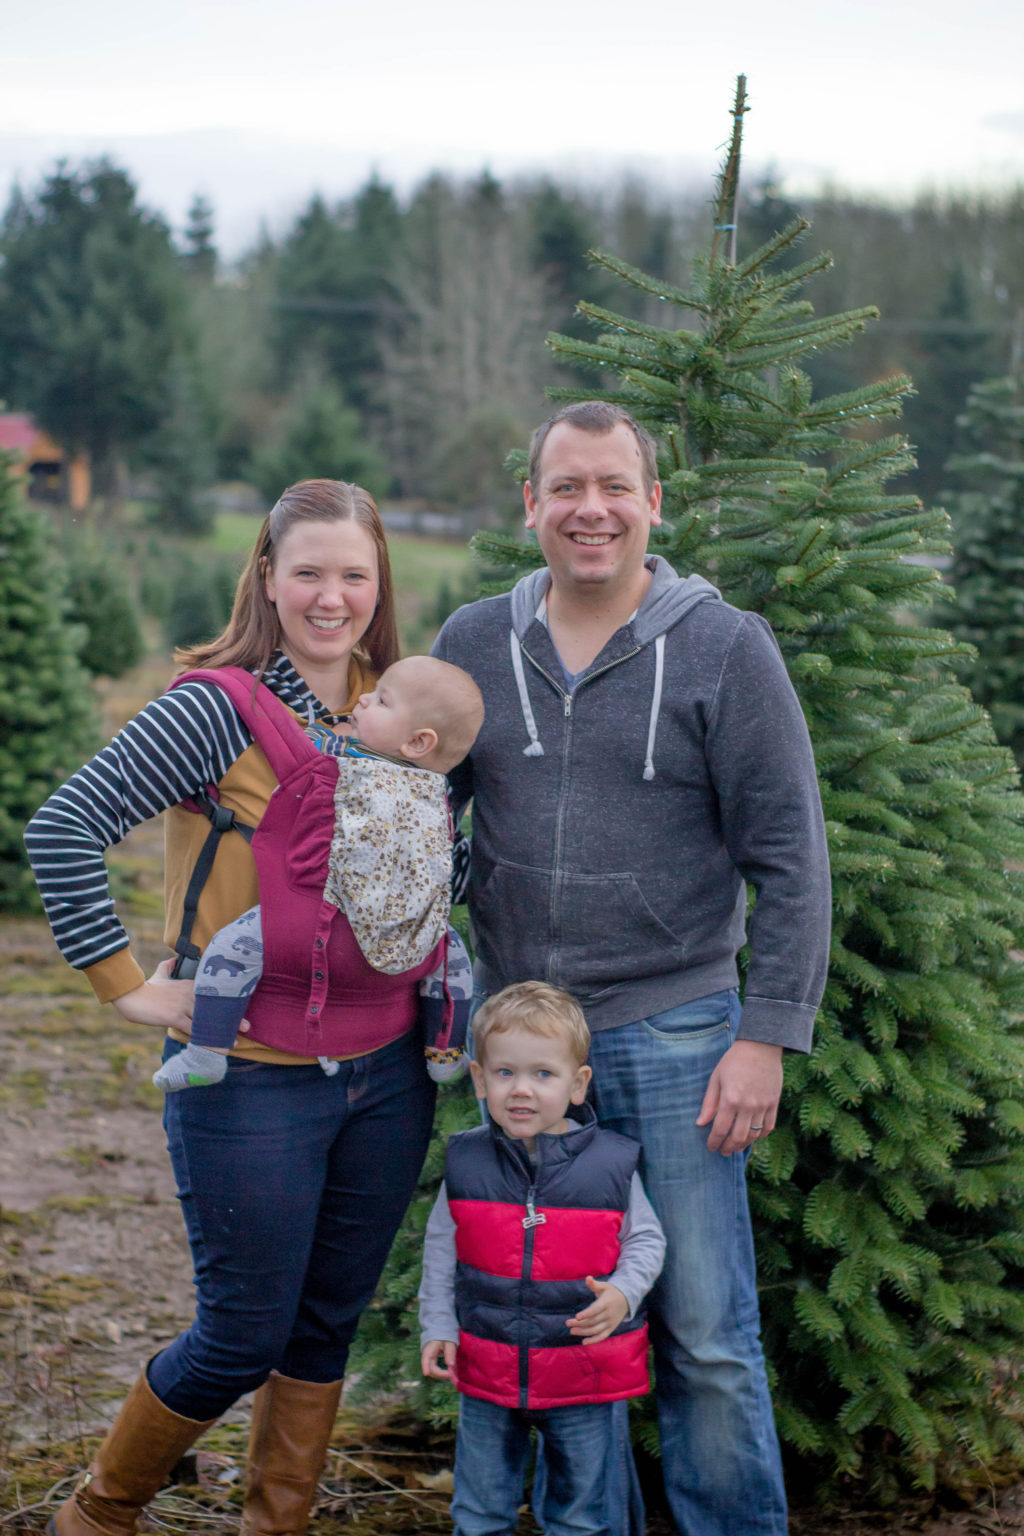 Getting a Christmas tree is a fantastic Christmas tradition